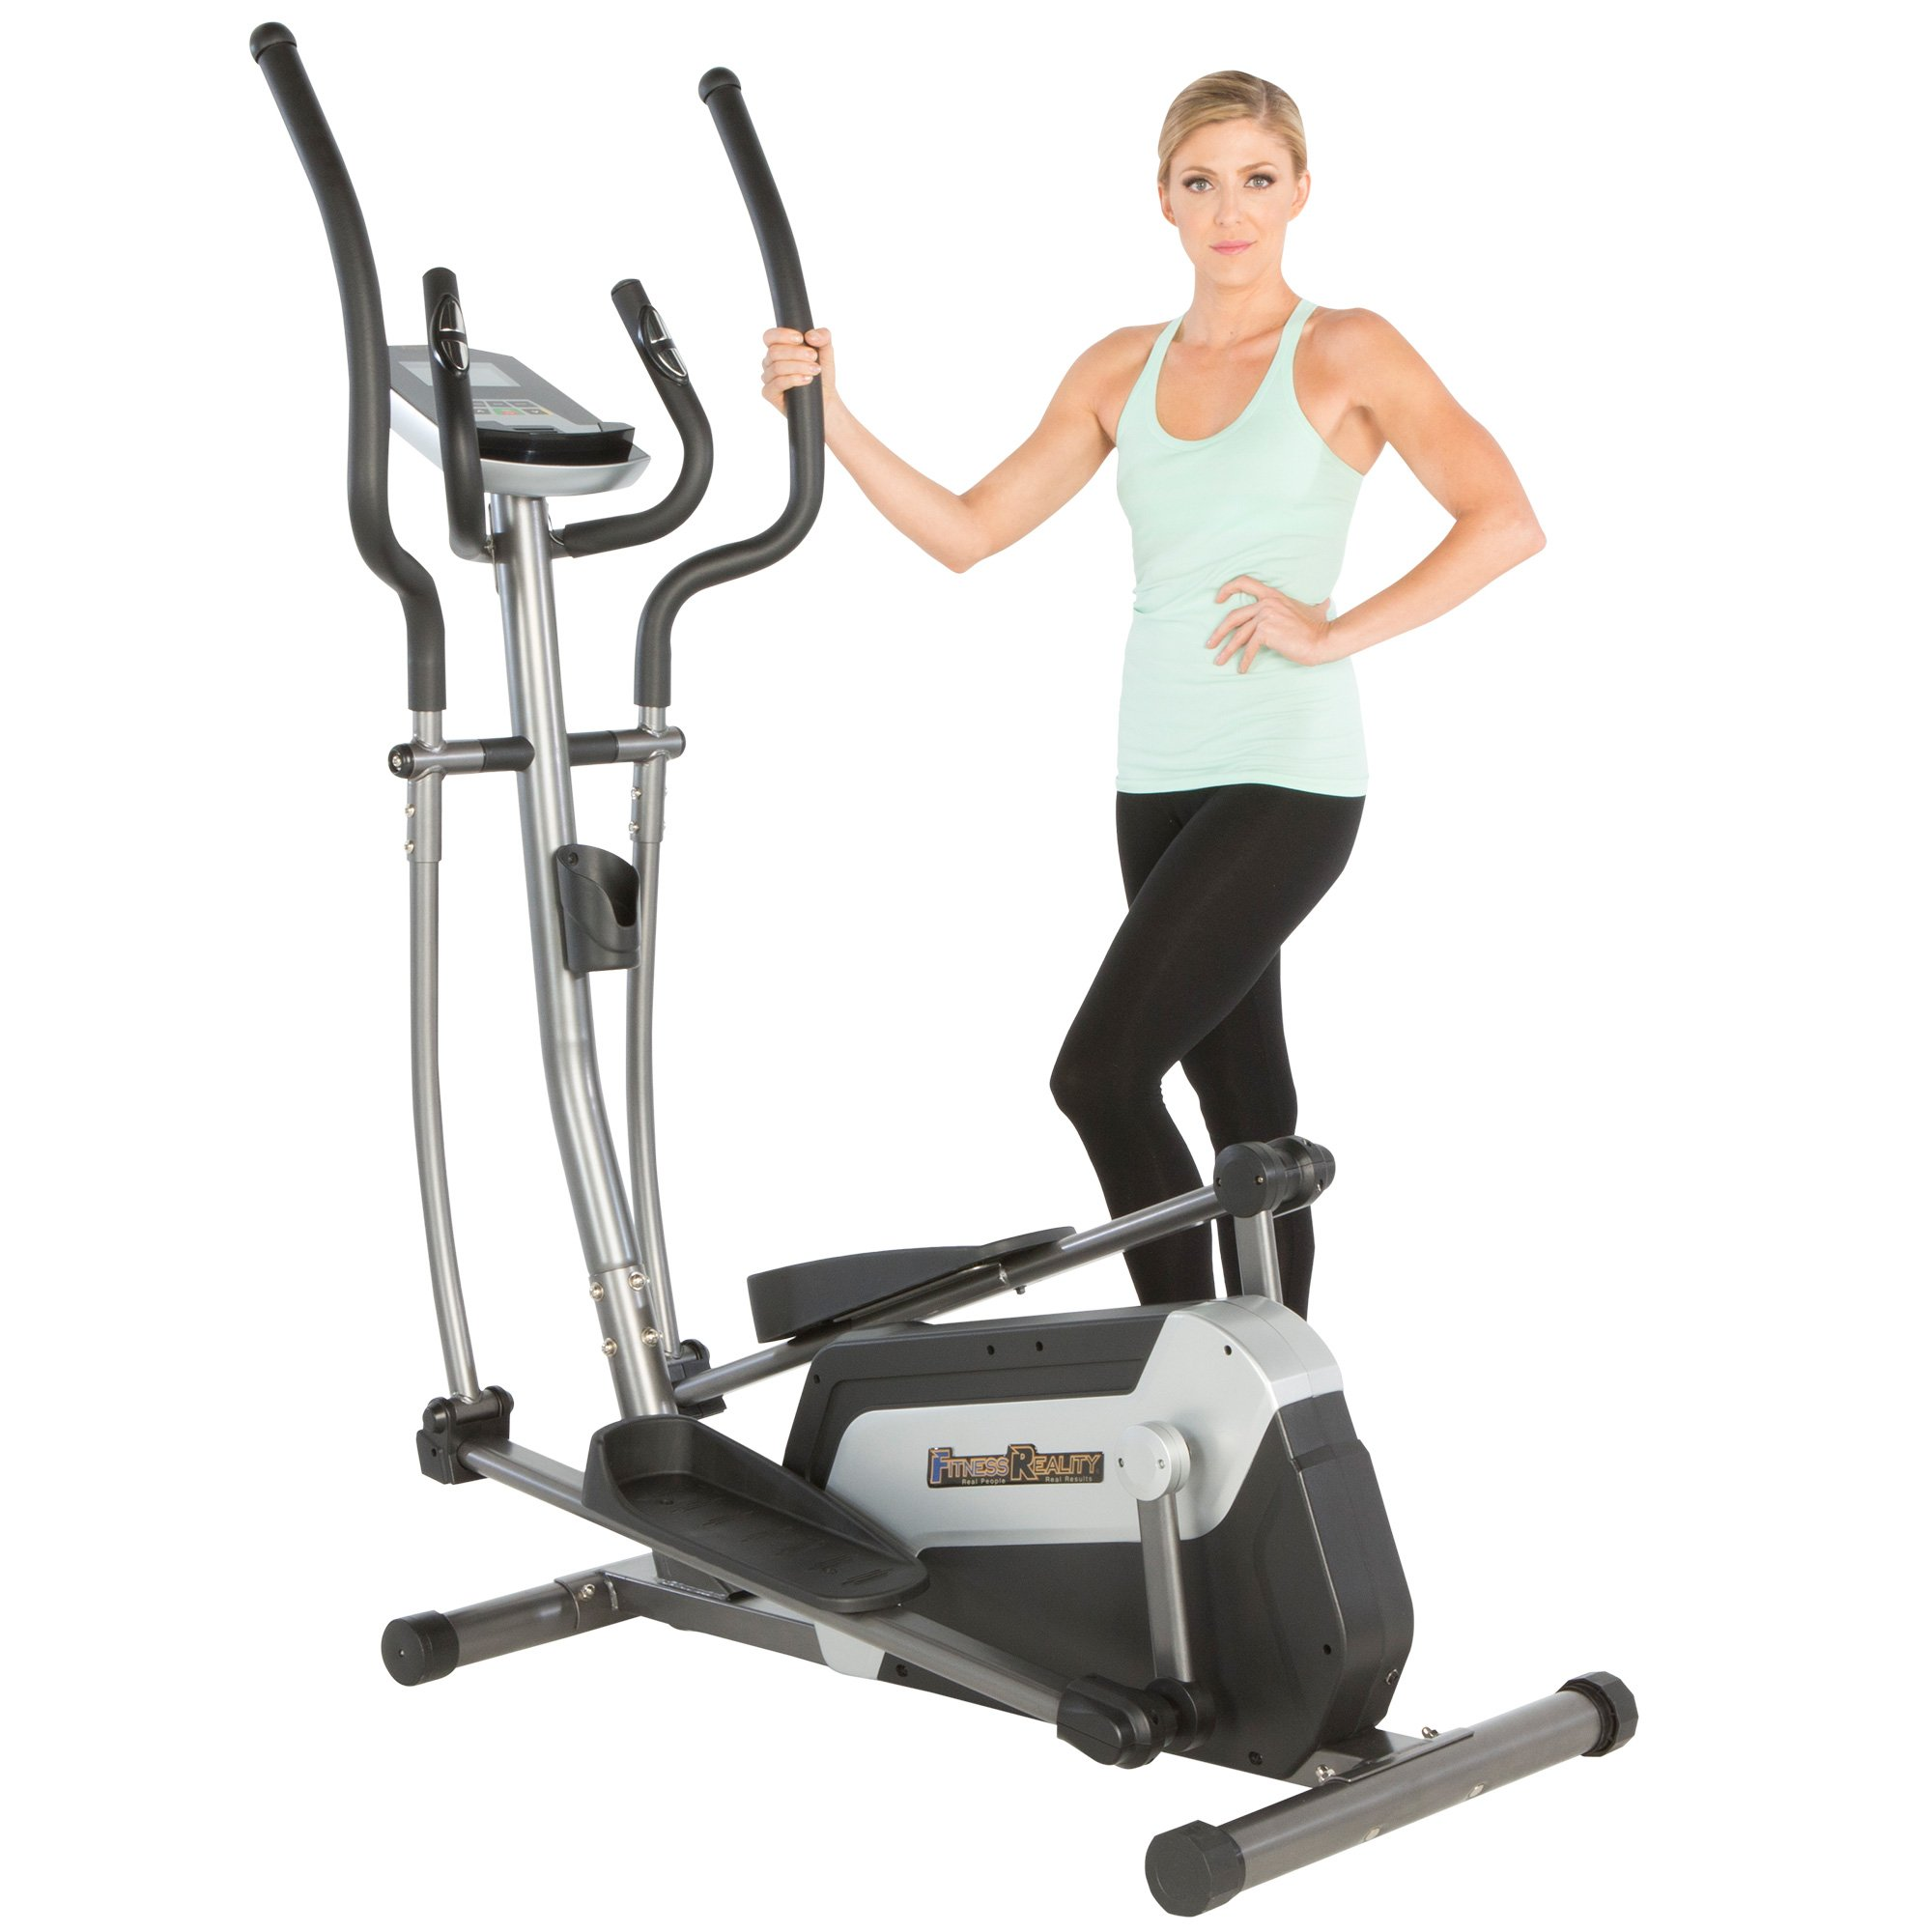 Fitness Reality E5500XL Magnetic Elliptical Trainer with Comfortable 18'' Stride